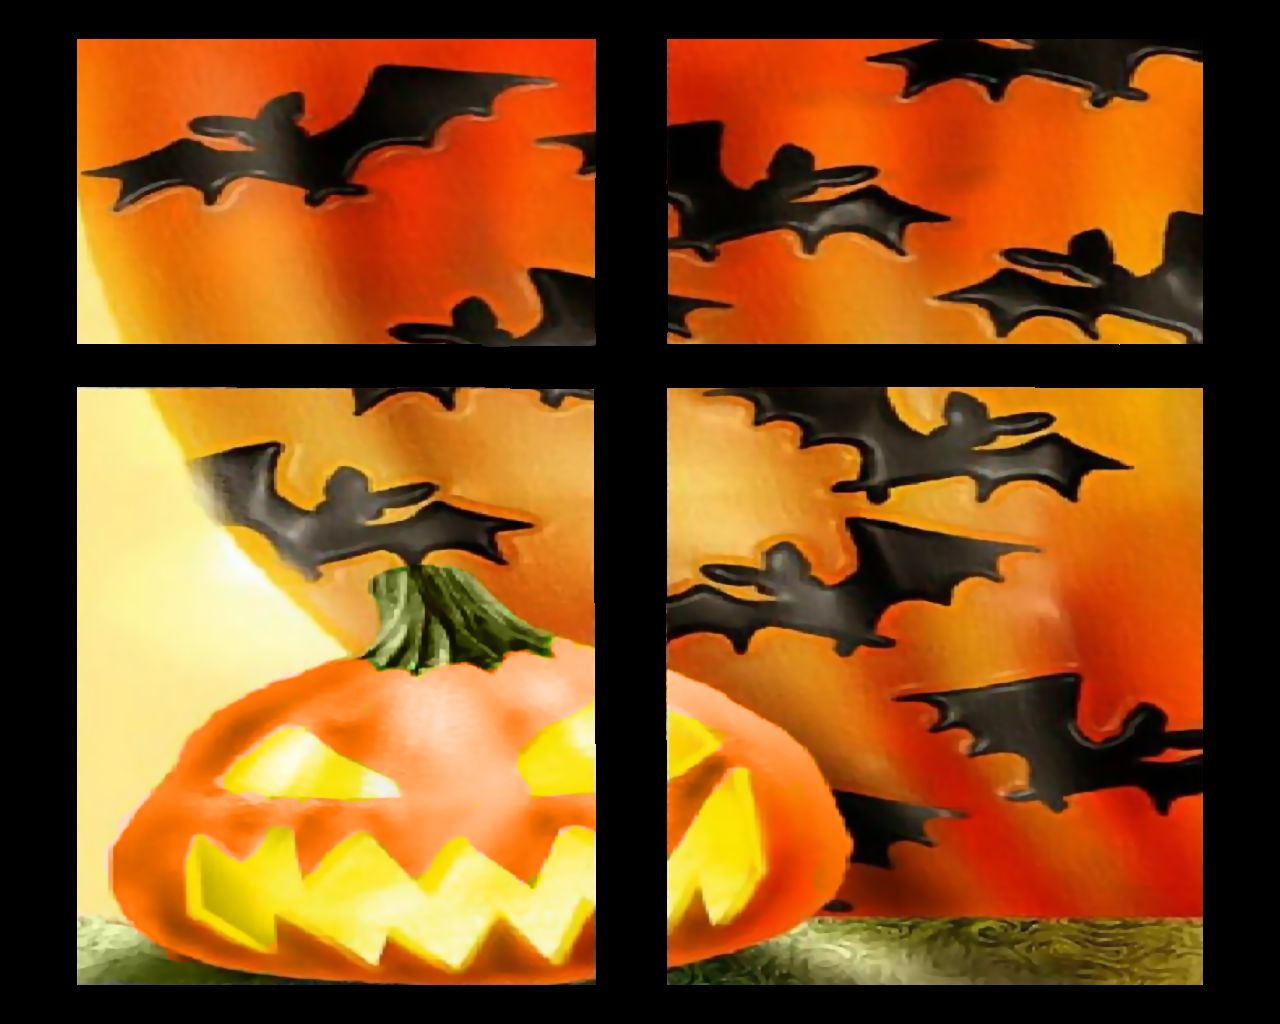 natural scene wallpaper: animated halloween desktop wallpaper